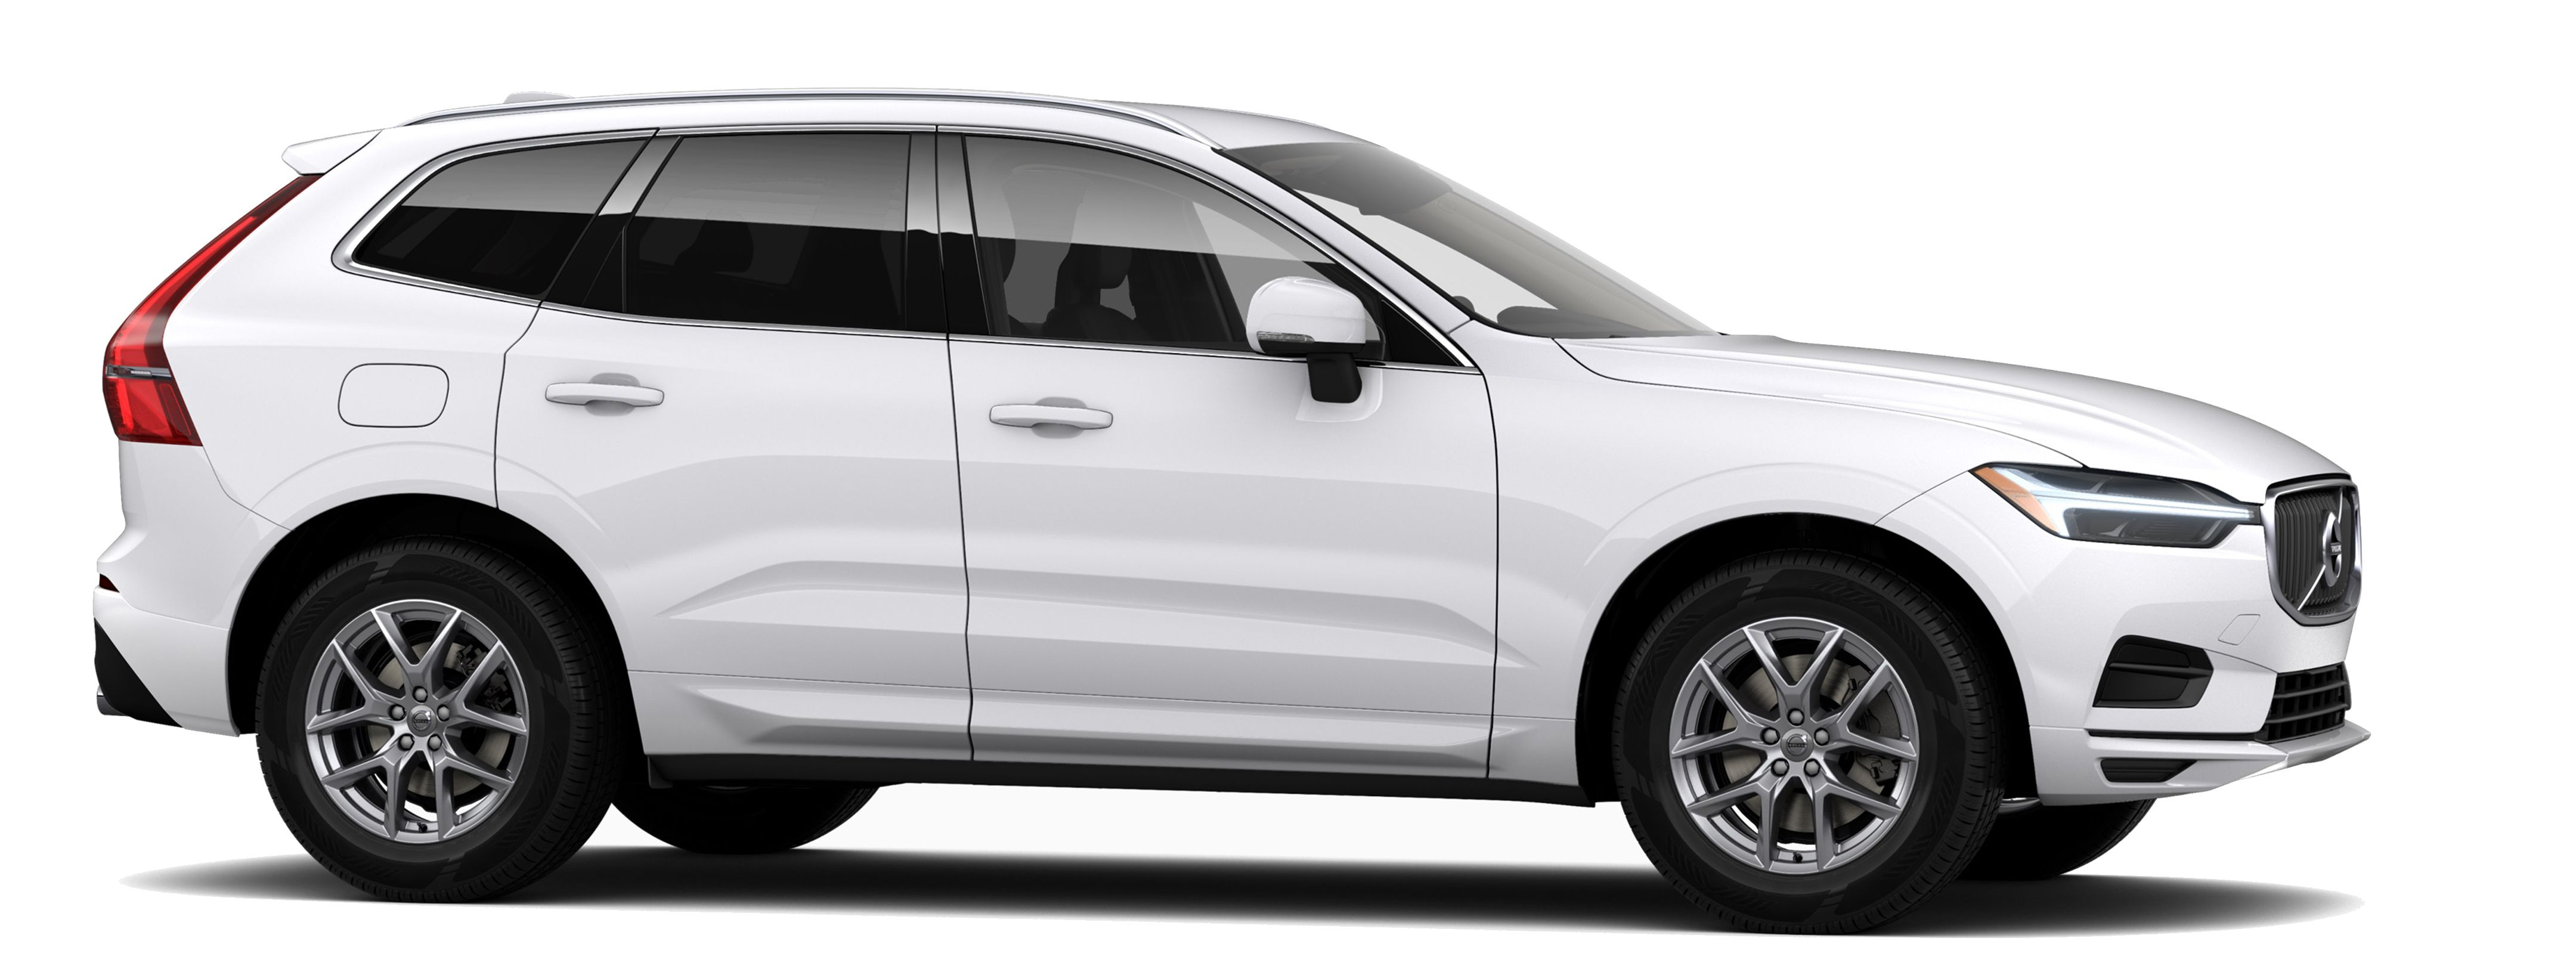 owned deals lease volvo sale pre htm price keystone berwyn certified pa offers new for